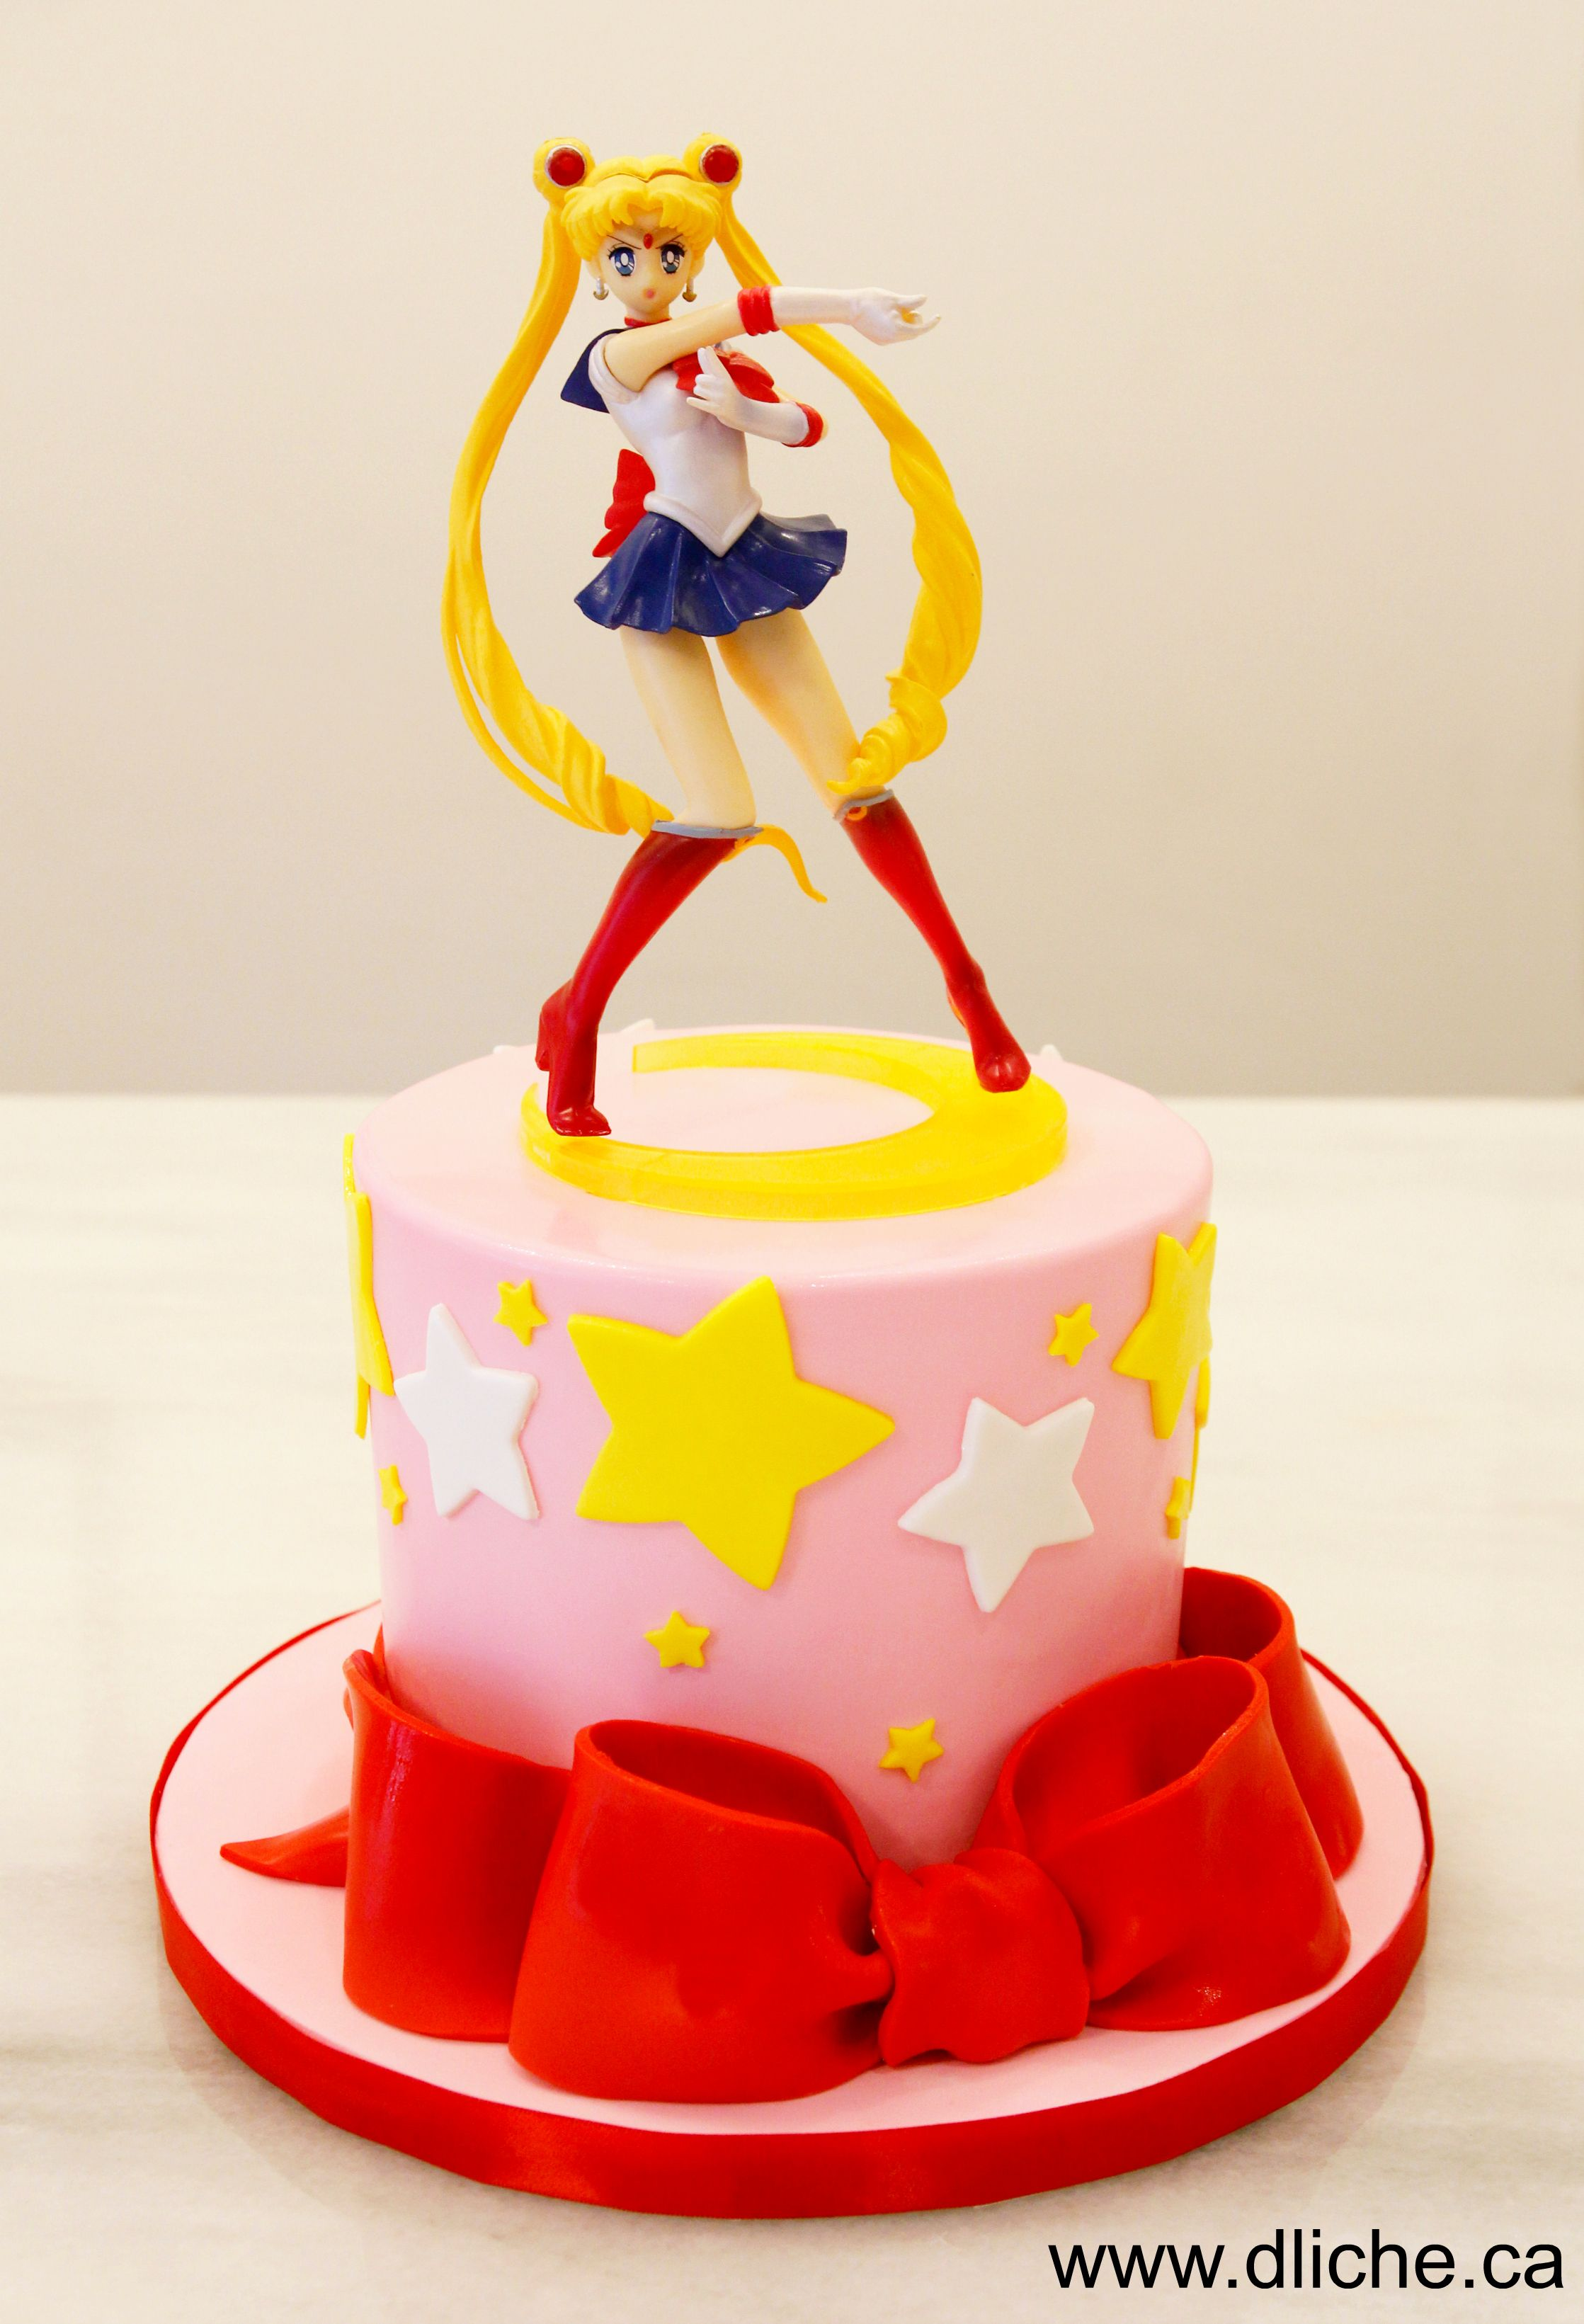 Gâteau Sailor Moon - Sailor moon cake #mooncake